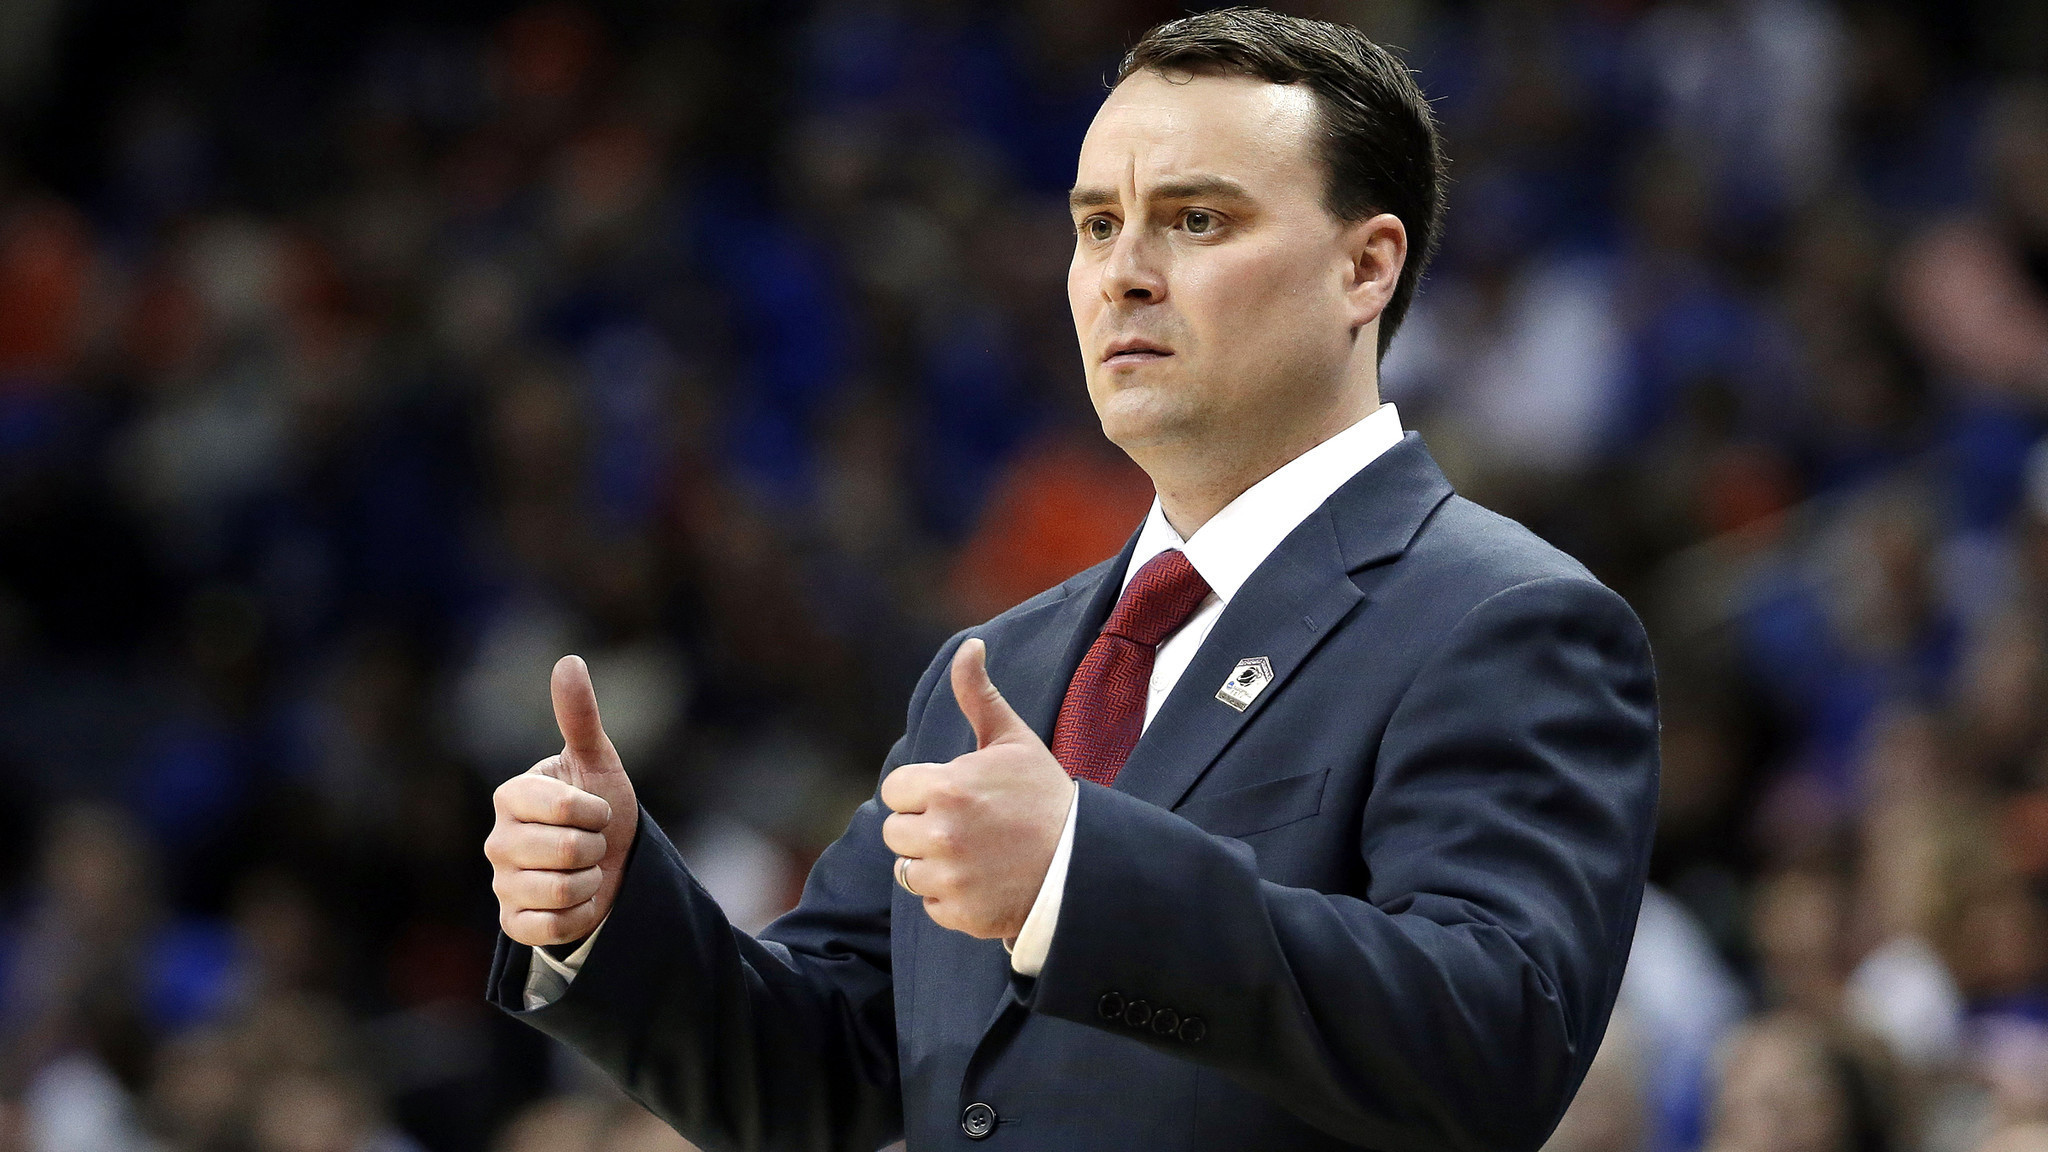 College basketball: Archie Miller hired as Indiana coach